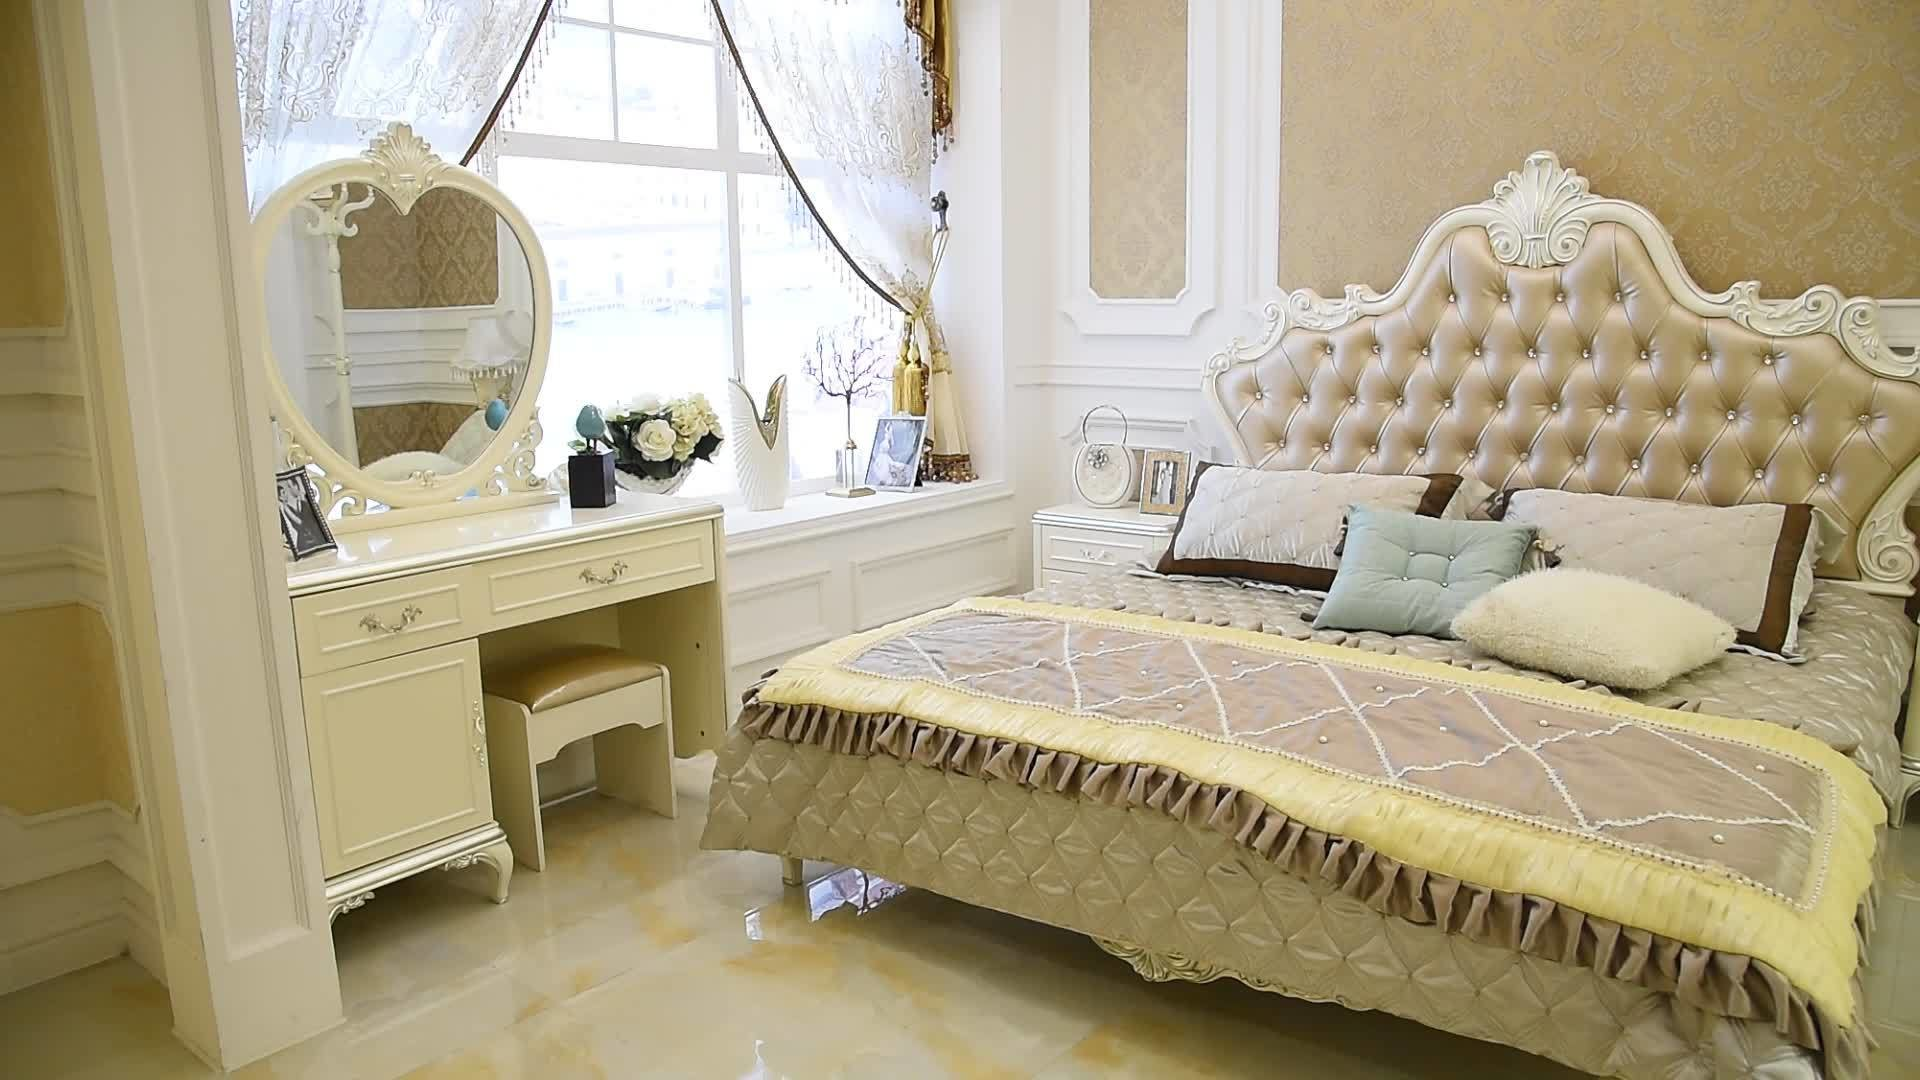 Best Classical Cream Colored Royal French Bedroom Set Luxury With Pictures